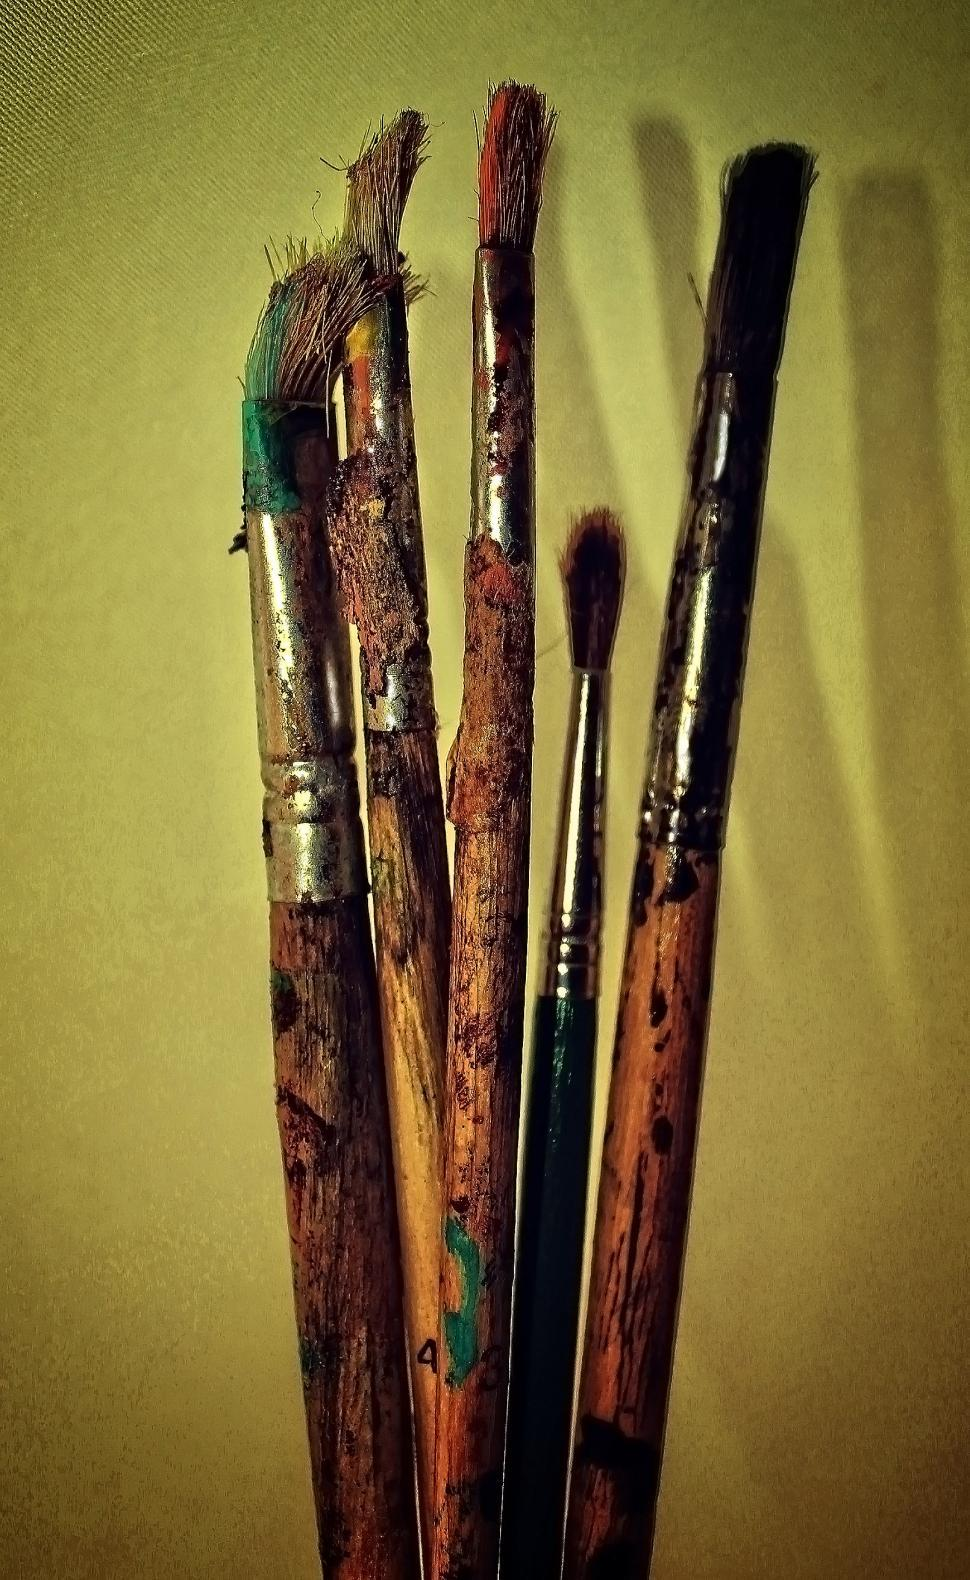 Download Free Stock HD Photo of Used paintbrushes - Noisy grunge looks Online